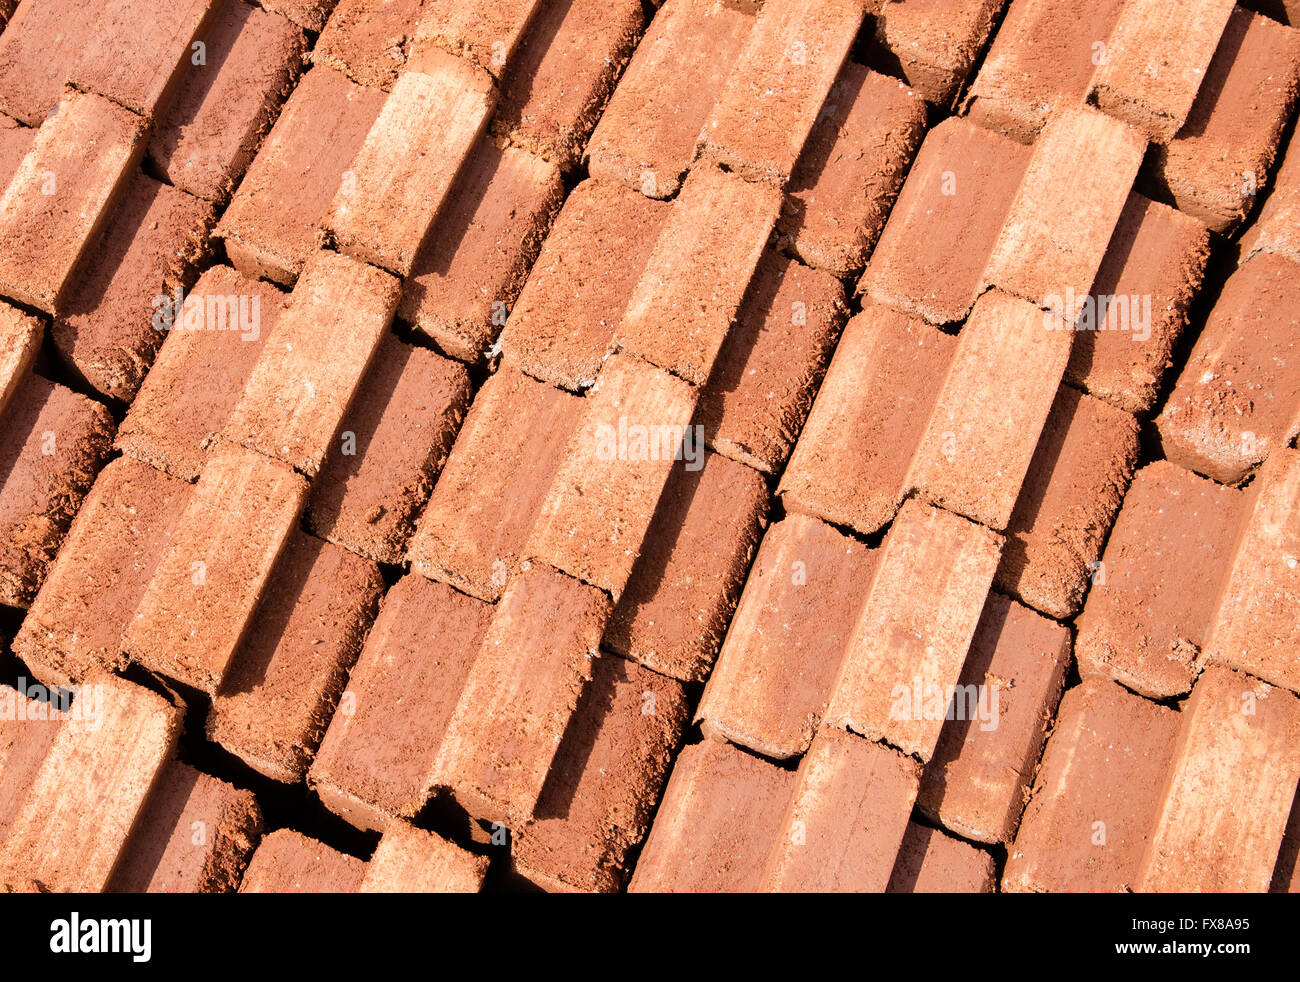 Interlocking bricks made by compressing earth and cement in a brick mold - Kenya East Africa - Stock Image